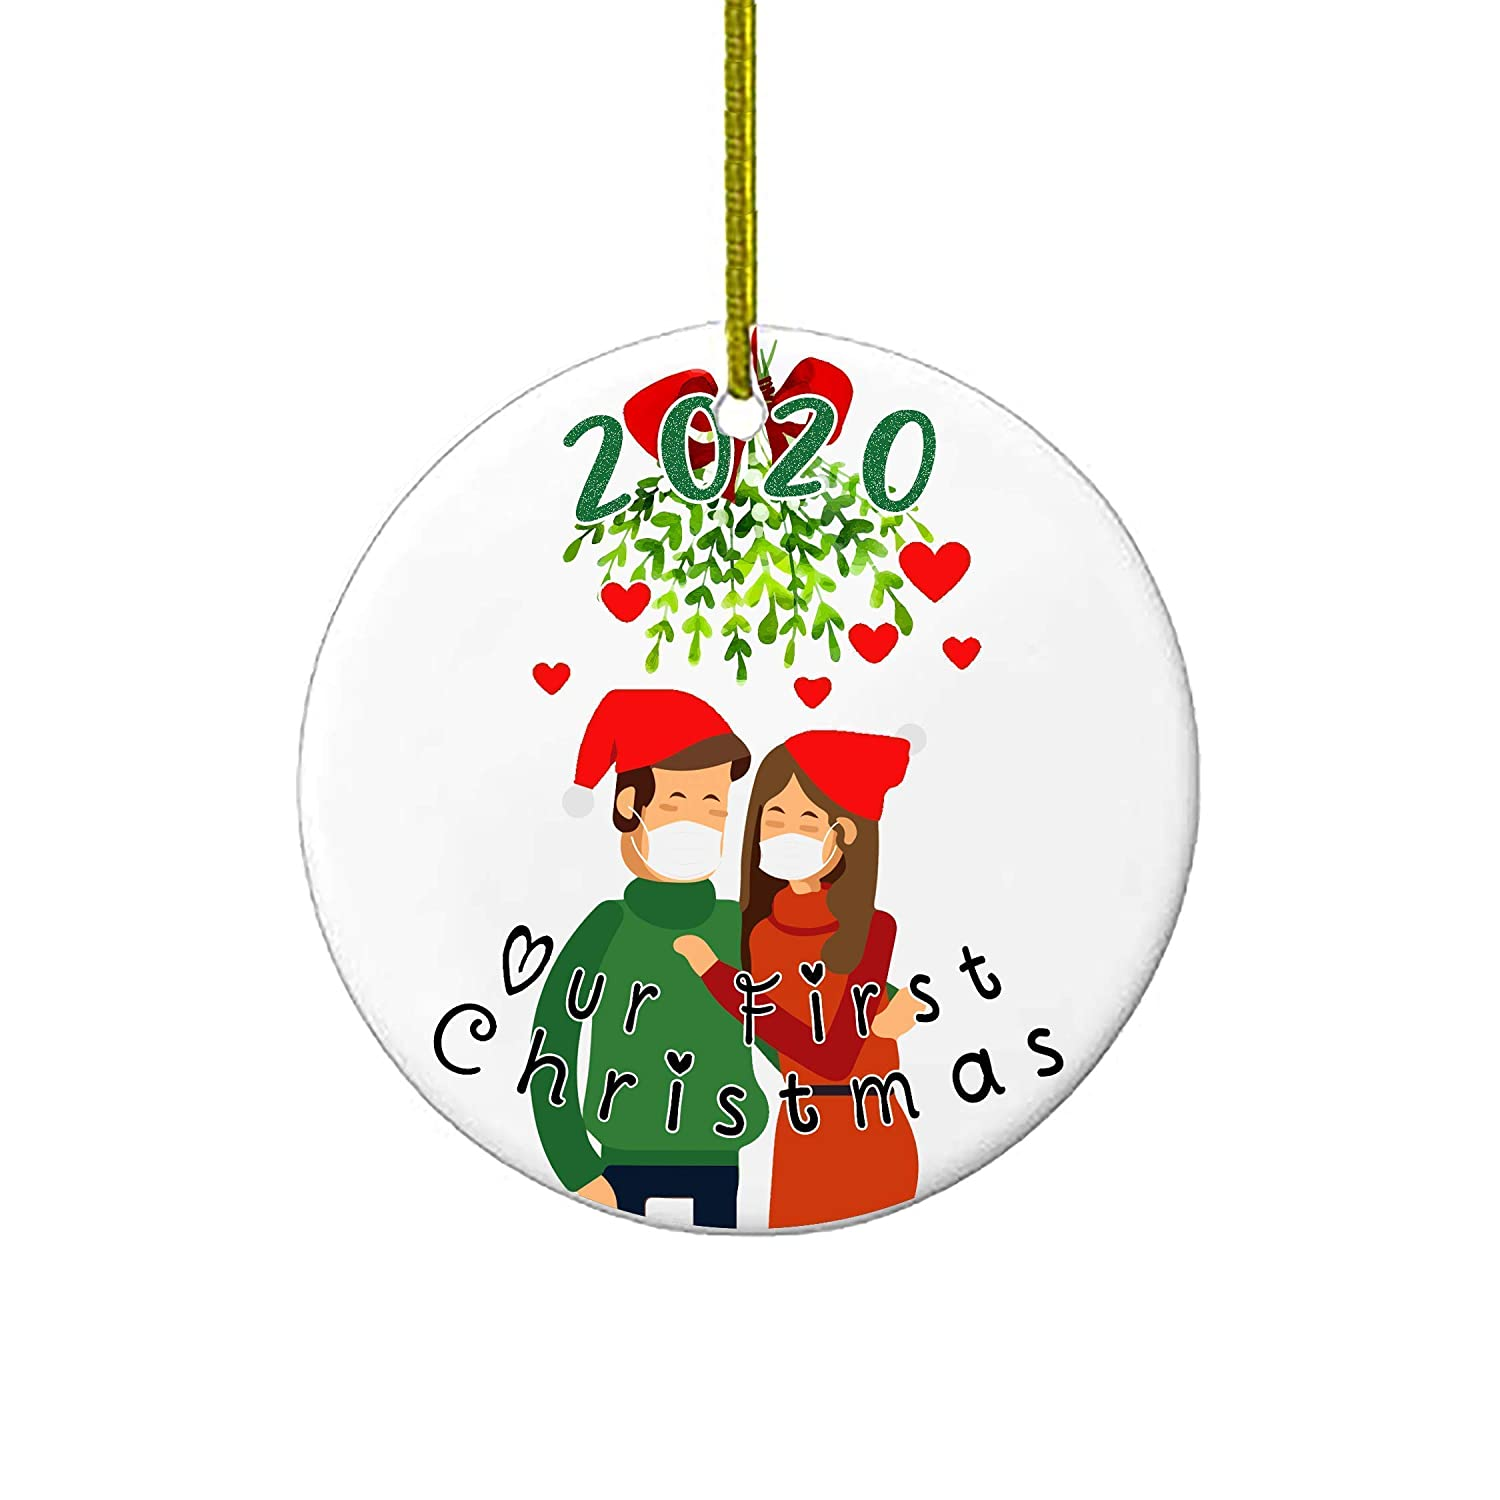 Holiday Deals For Christmas 2020 Amazon.com: Christmas Ornaments | Our First Christmas 2020 Funny